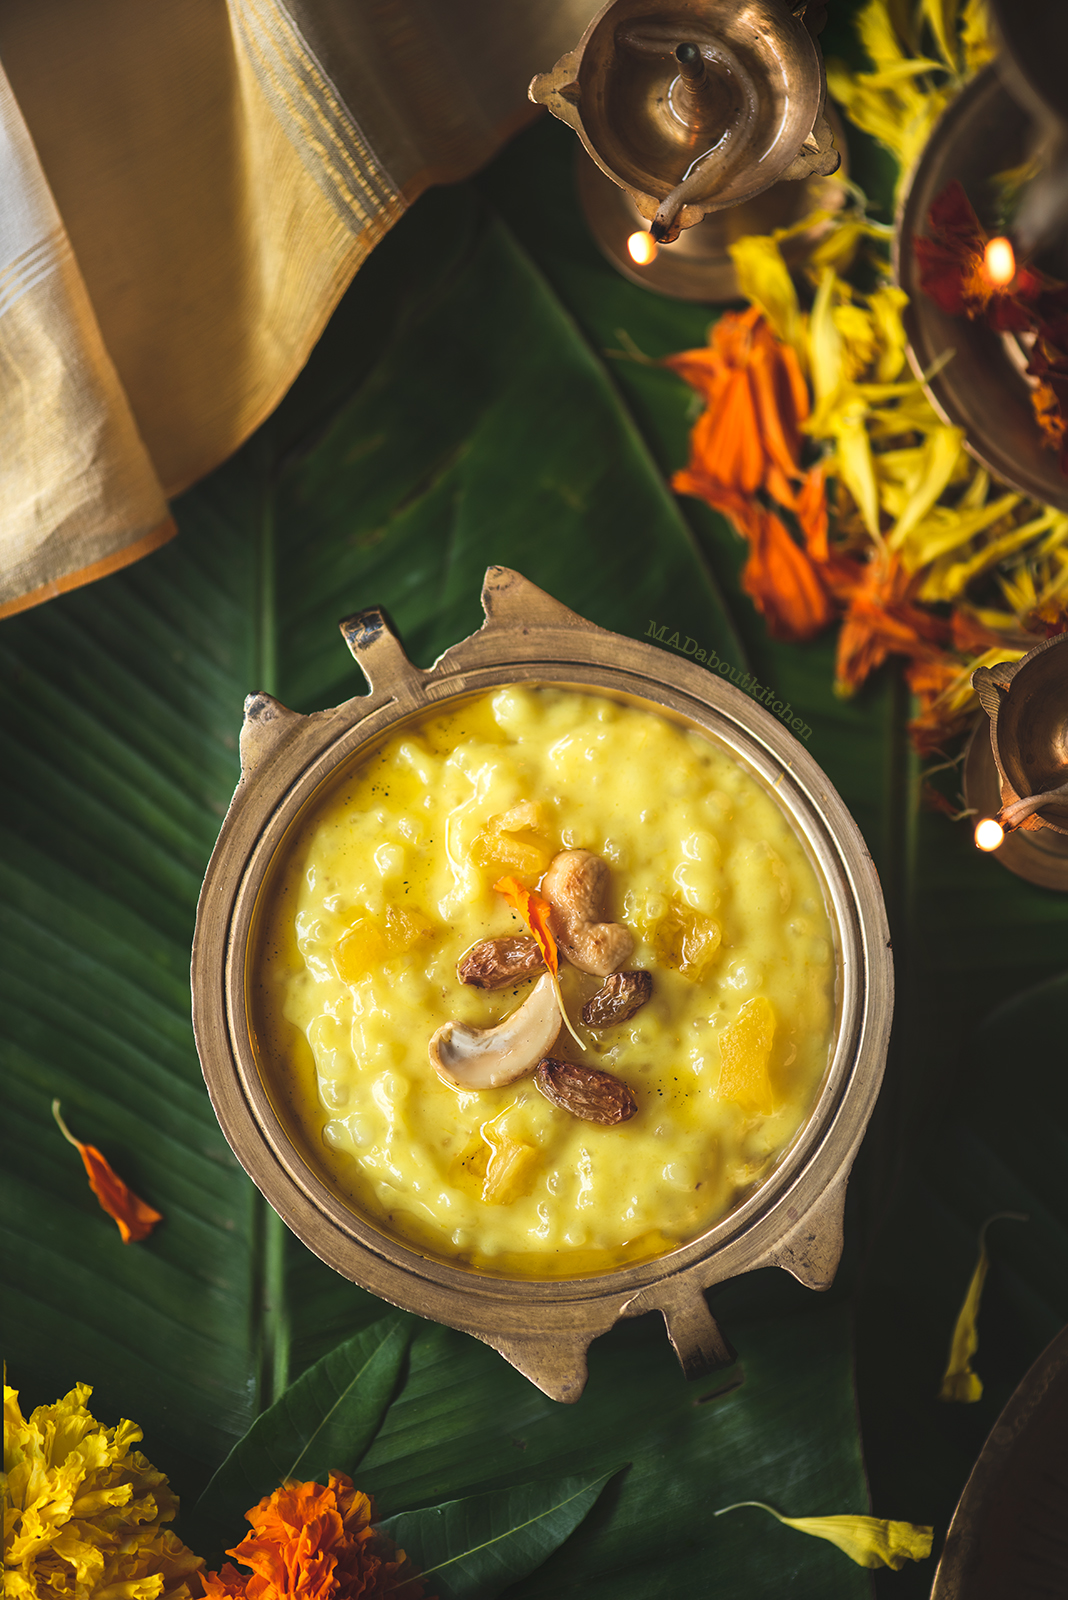 Pineapple payasam is a Kerala style Pineapple kheer specially made during Onam. Pineapple is cooked with Sago to make this creamy payasam.